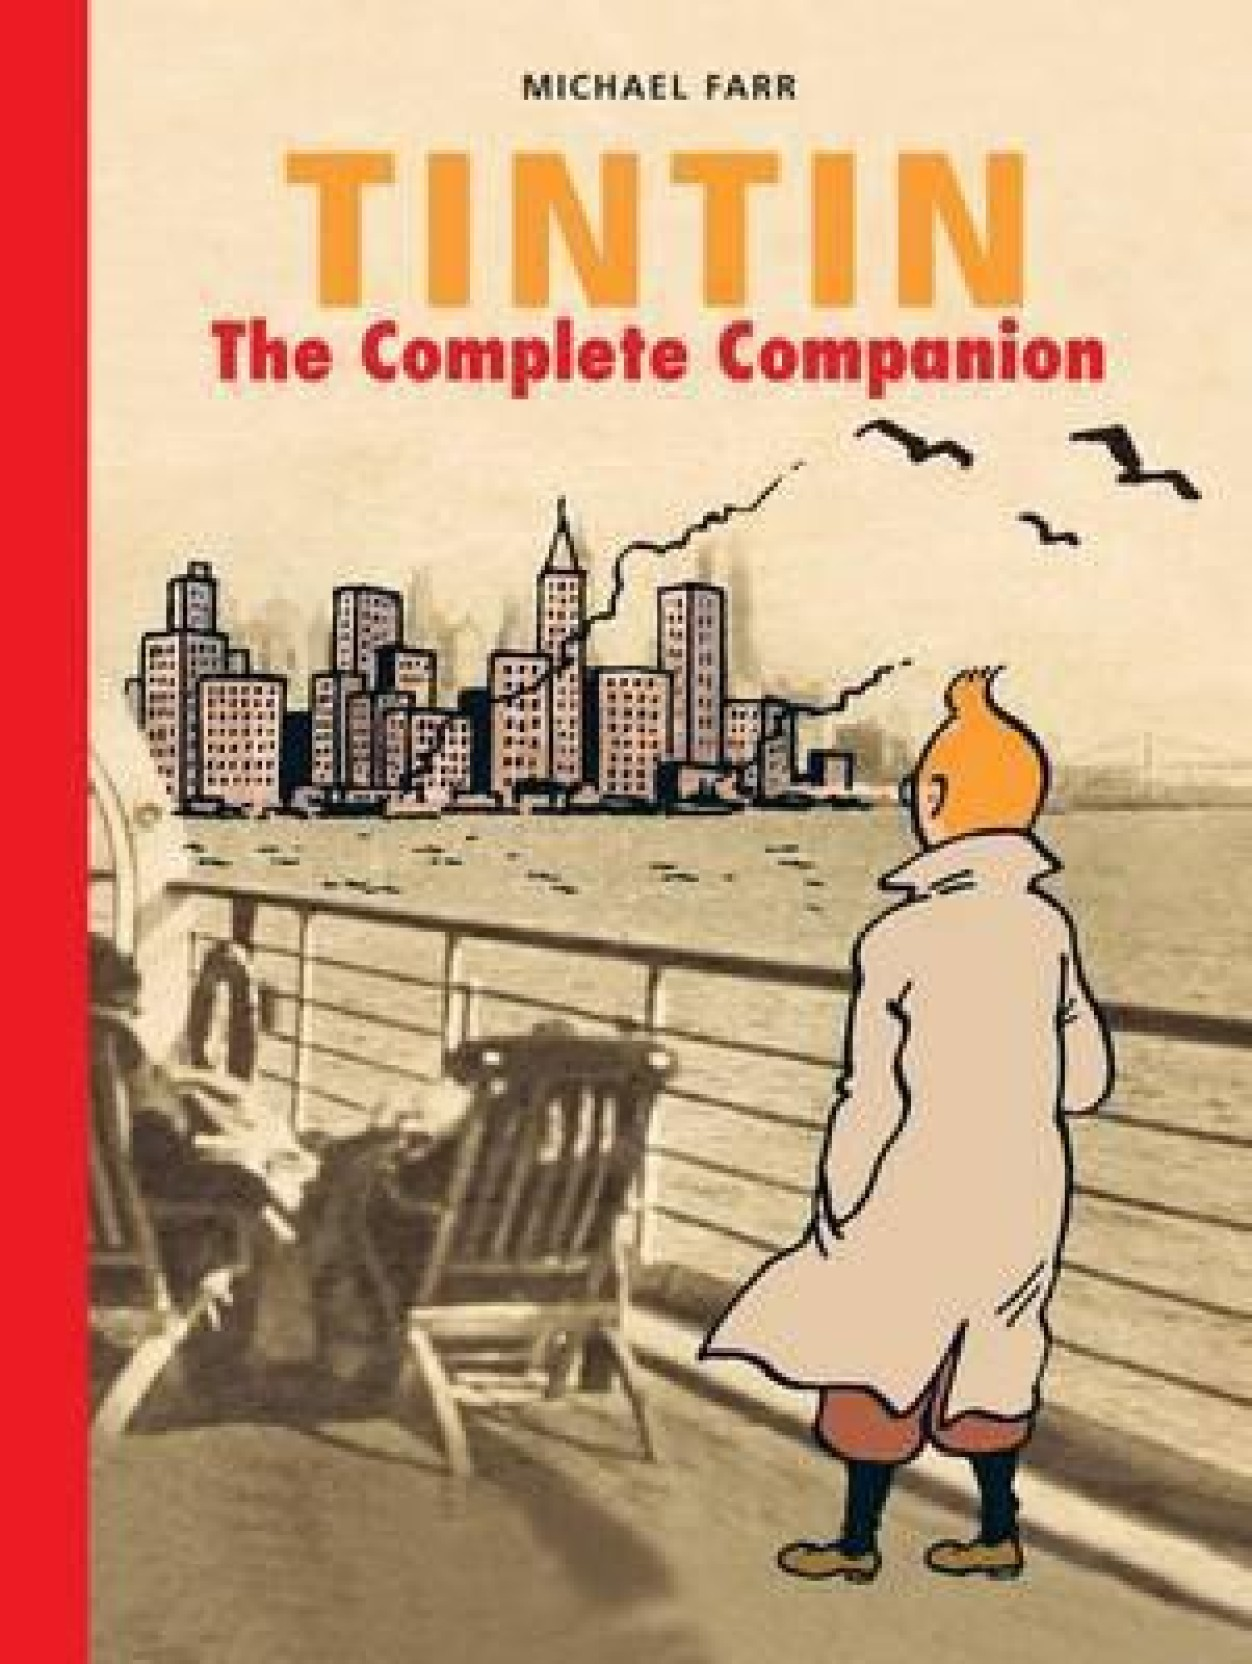 Tintin : The Complete Companion. ADD TO CART